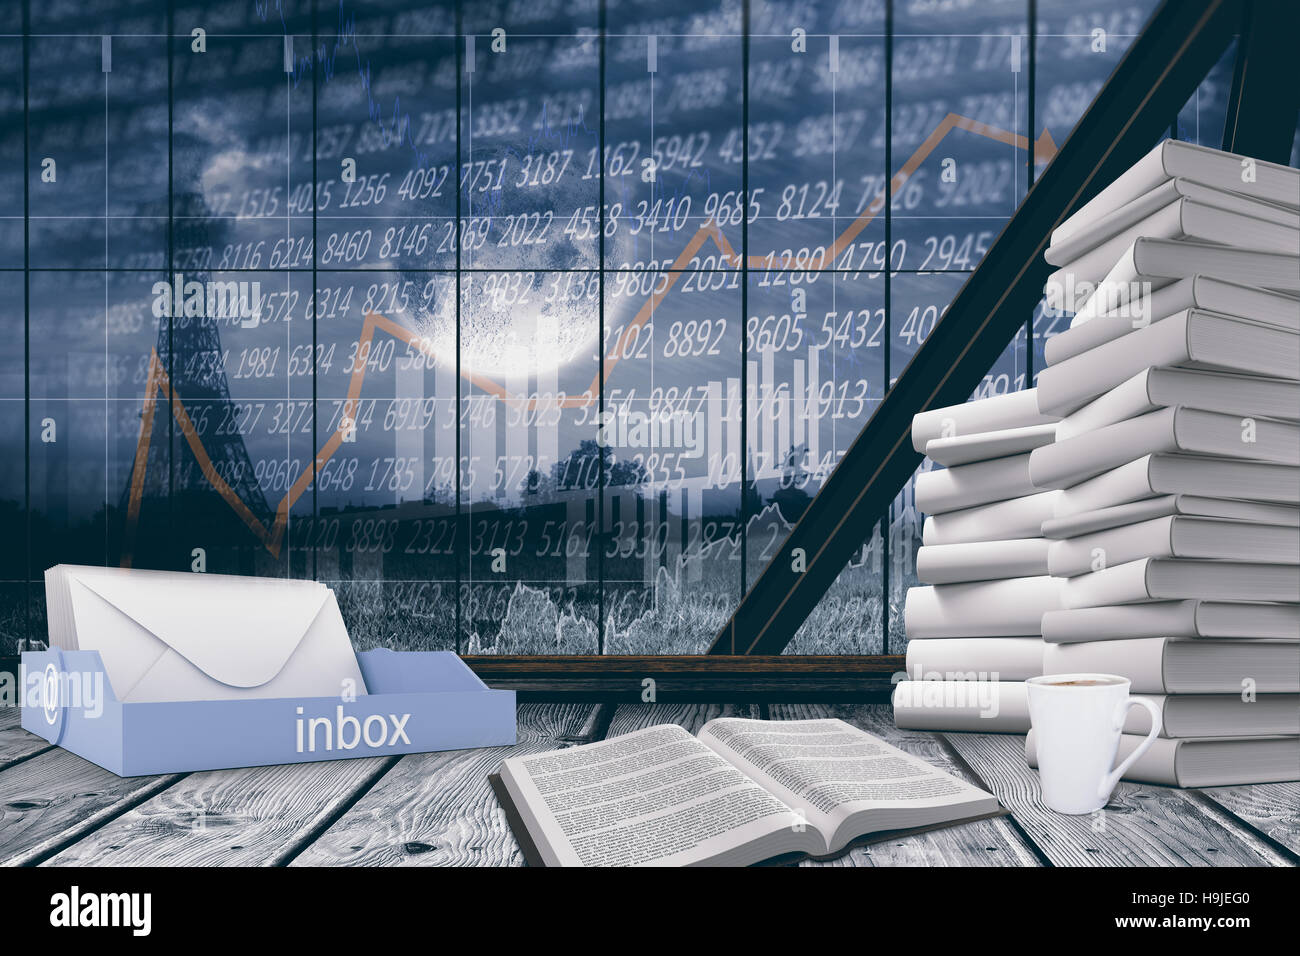 Composite image of an inbox beside books - Stock Image